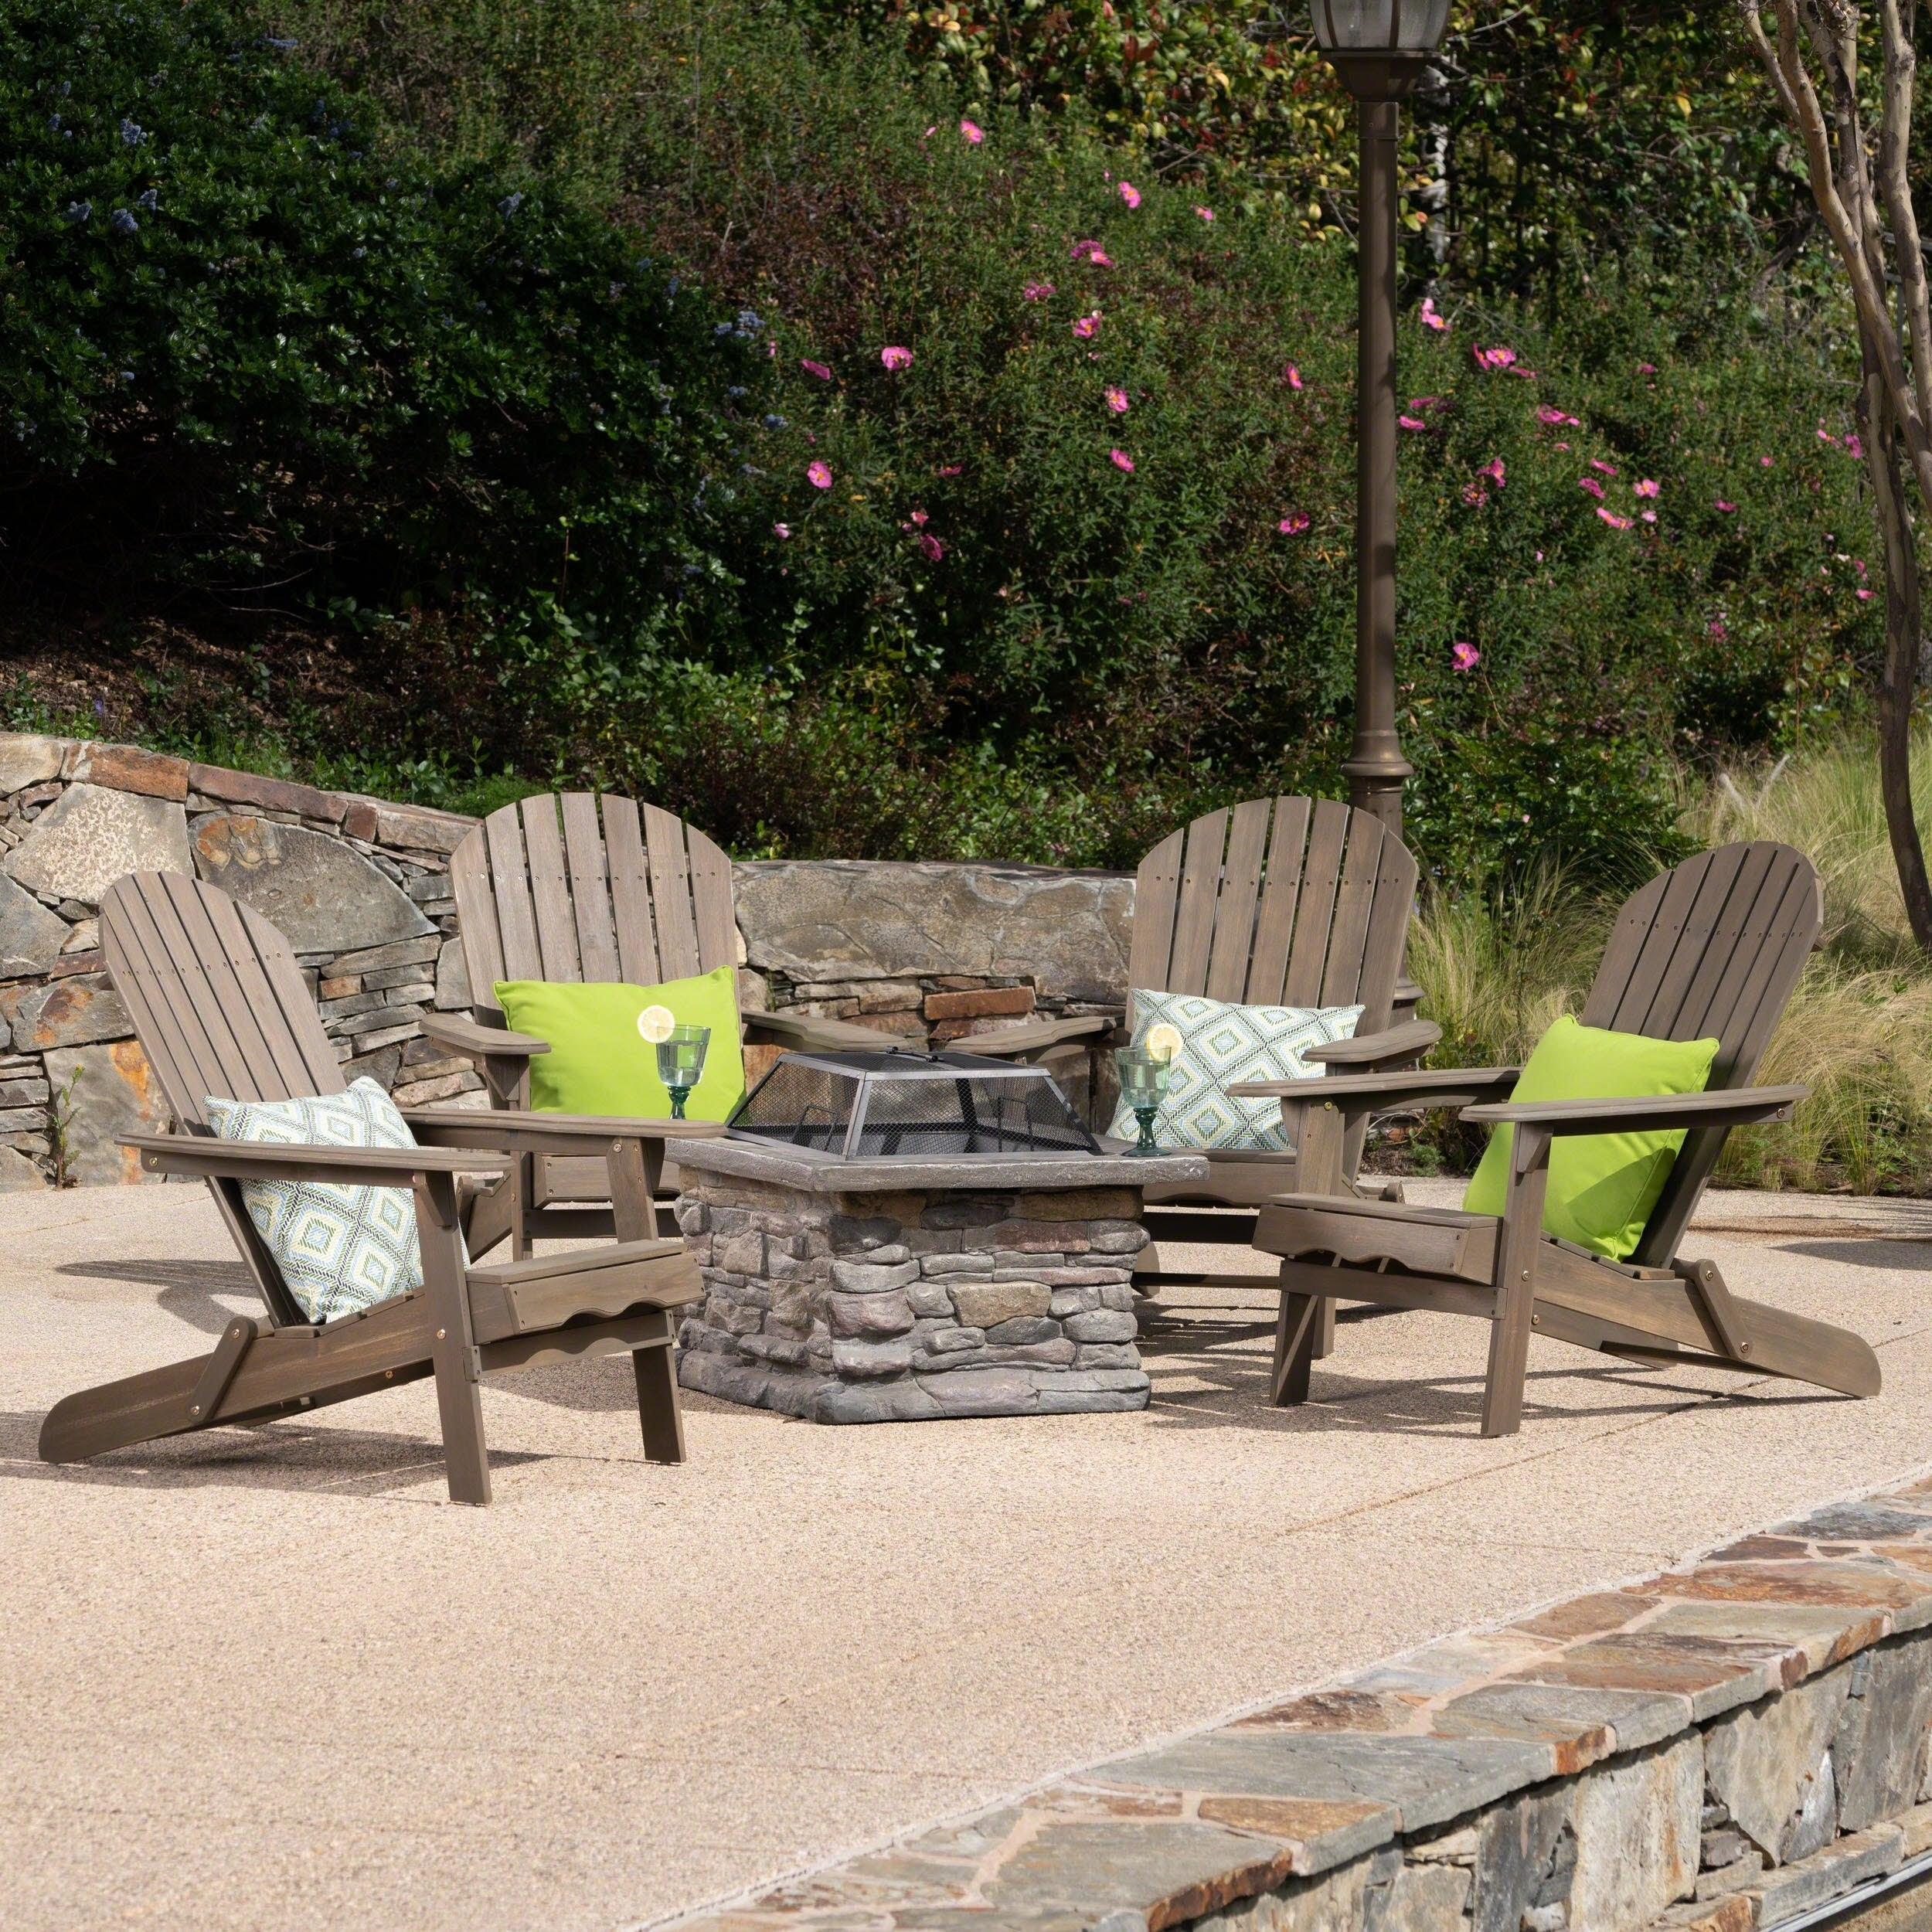 Awesome Marrion Outdoor 5 Piece Adirondack Chair Set With Fire Pit By Christopher Knight Home Machost Co Dining Chair Design Ideas Machostcouk